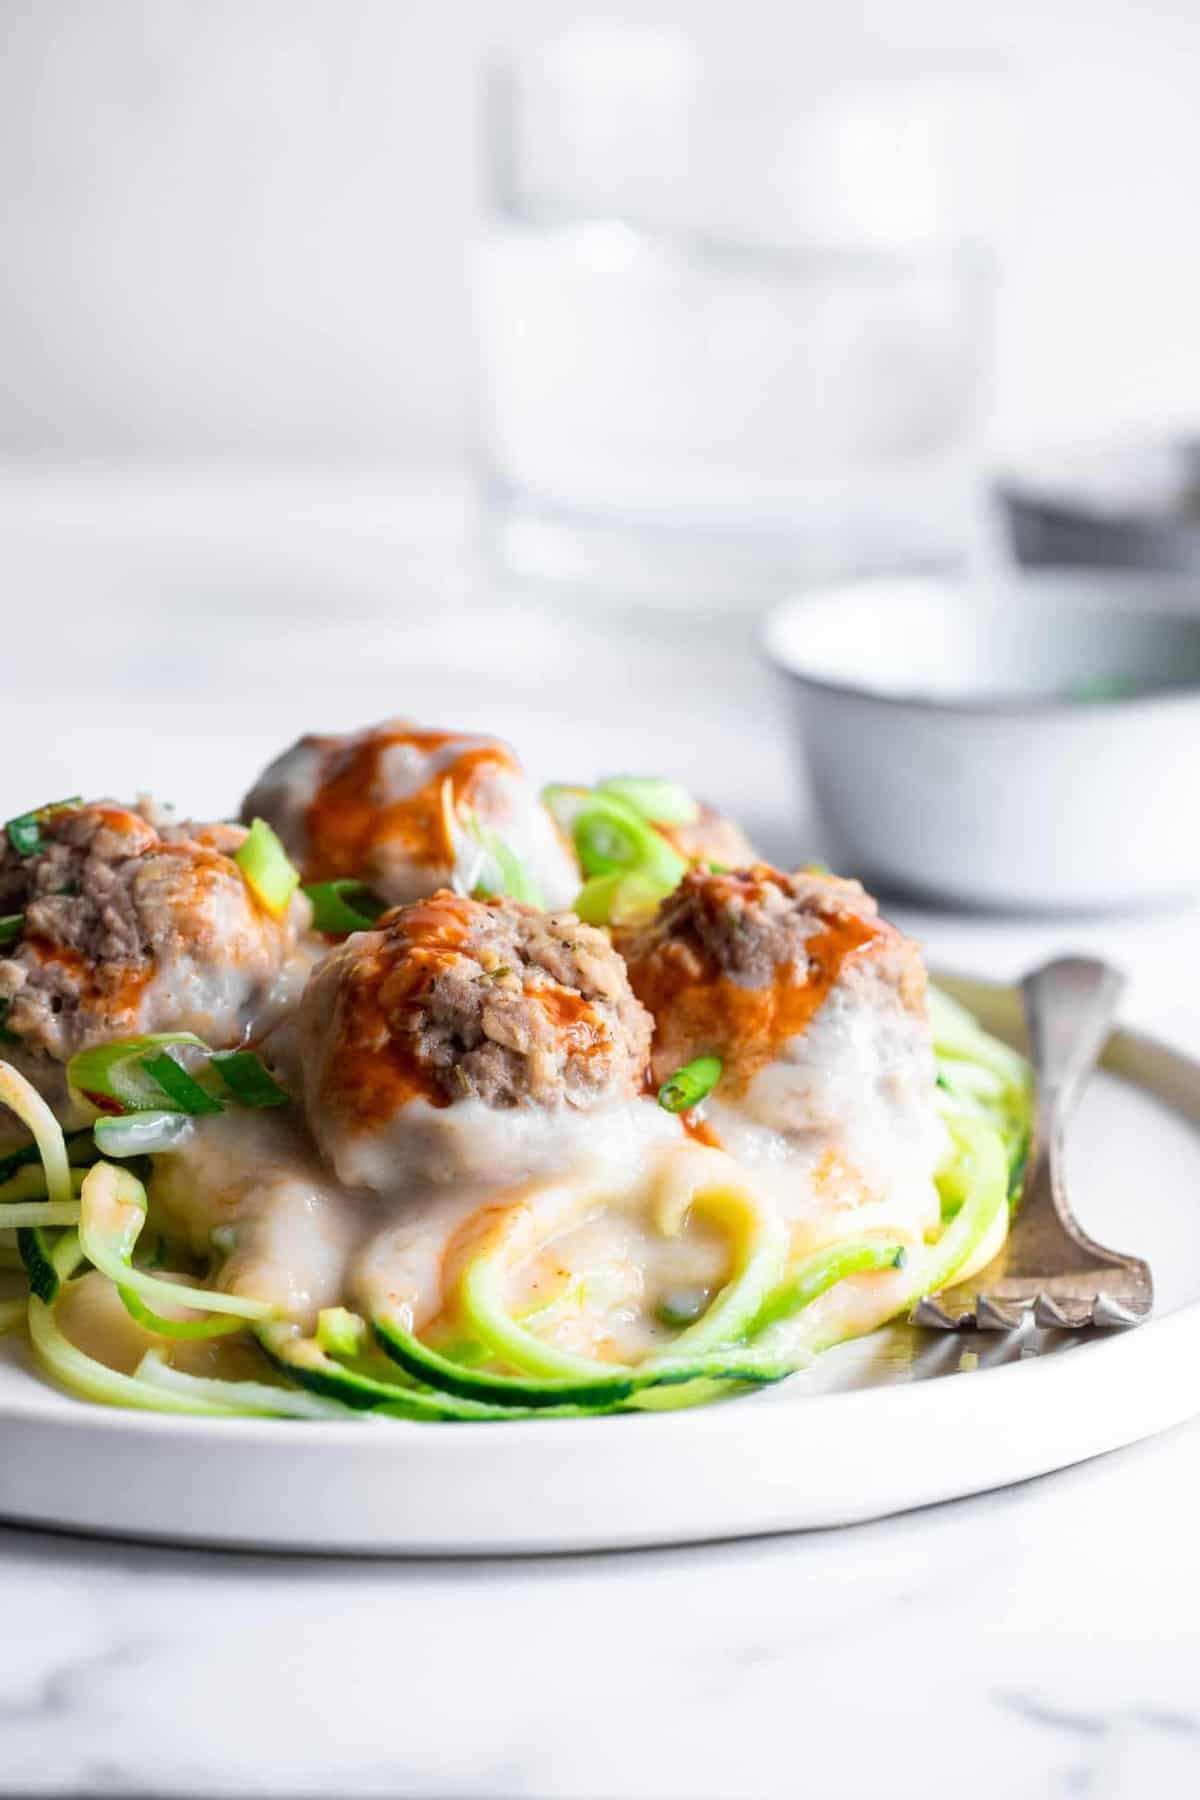 Low carb buffalo chicken meatballs on a pile of zucchini noodles